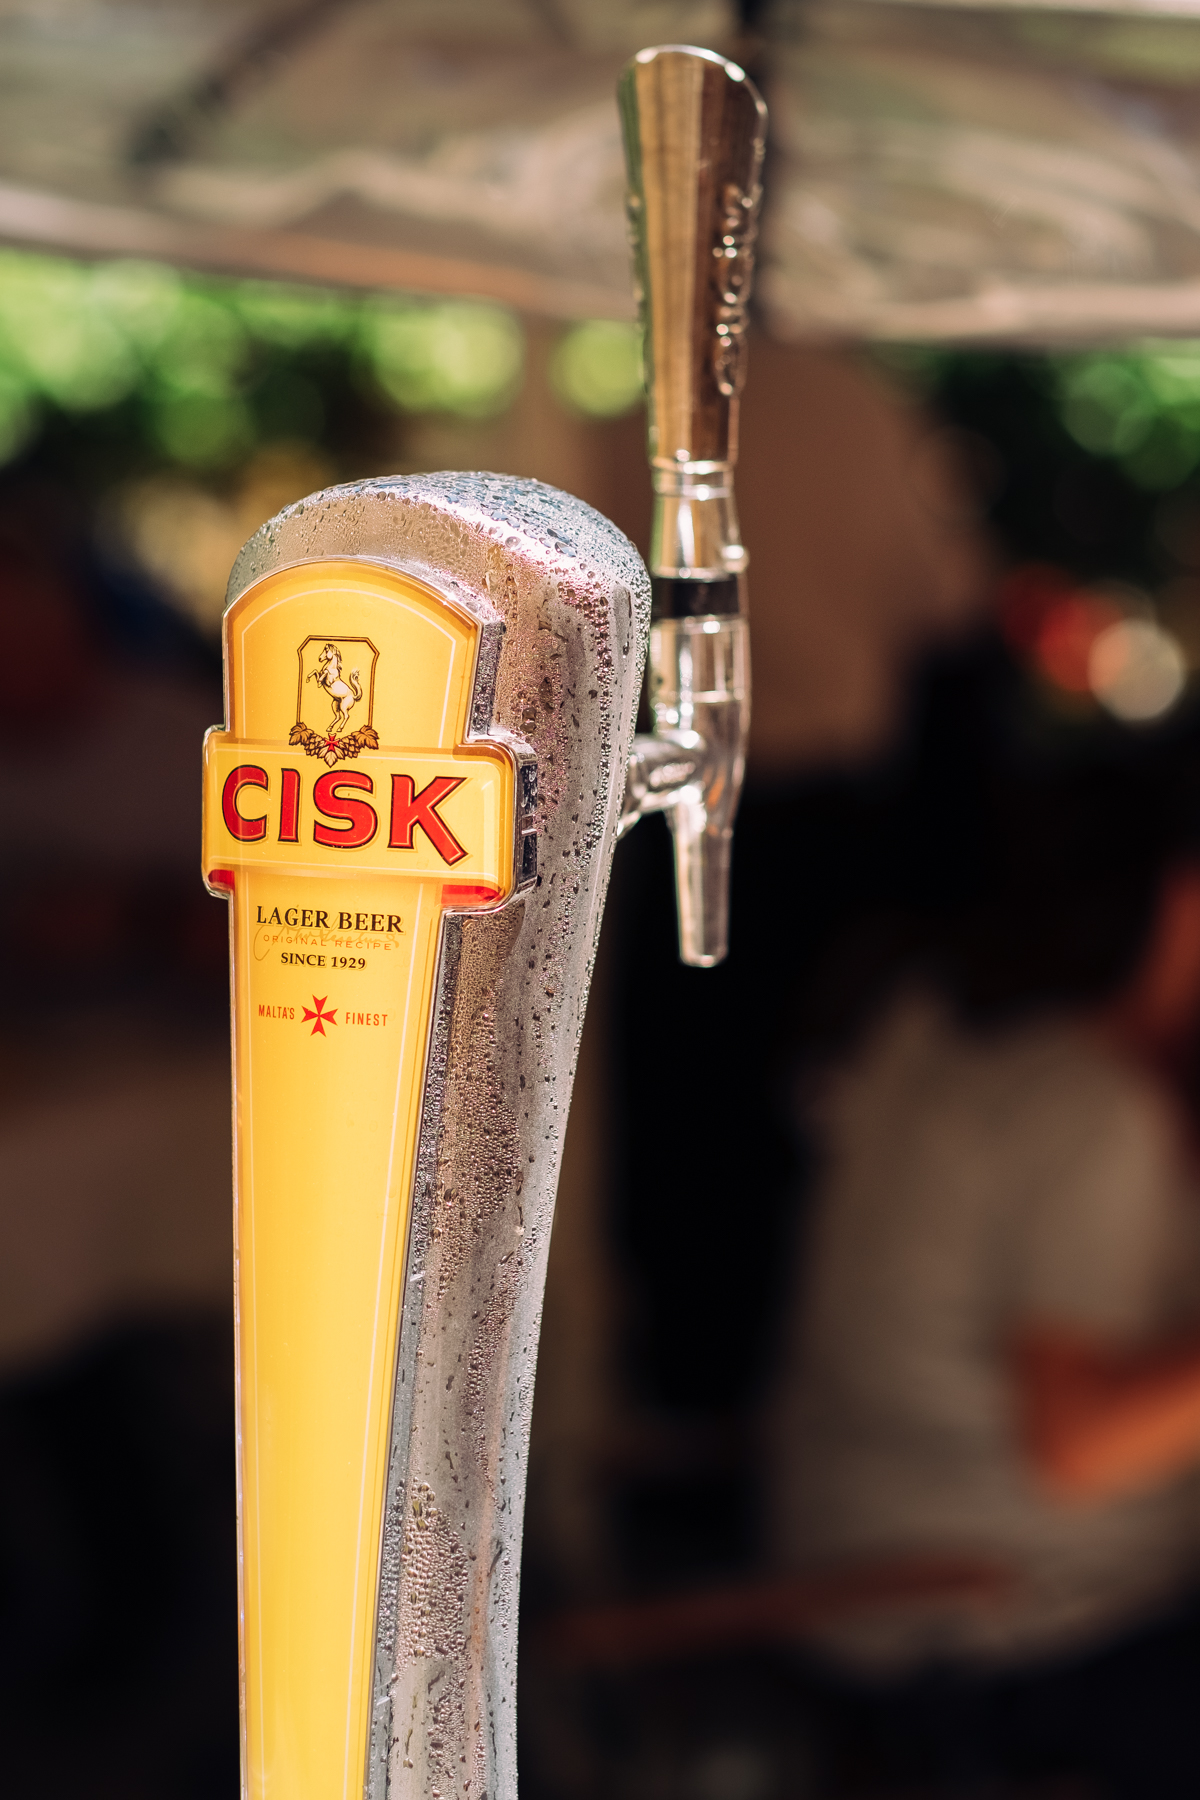 Cisk local beer - the RAINBOW series - Malta © 2018 Matthijs Jonker Fotografie